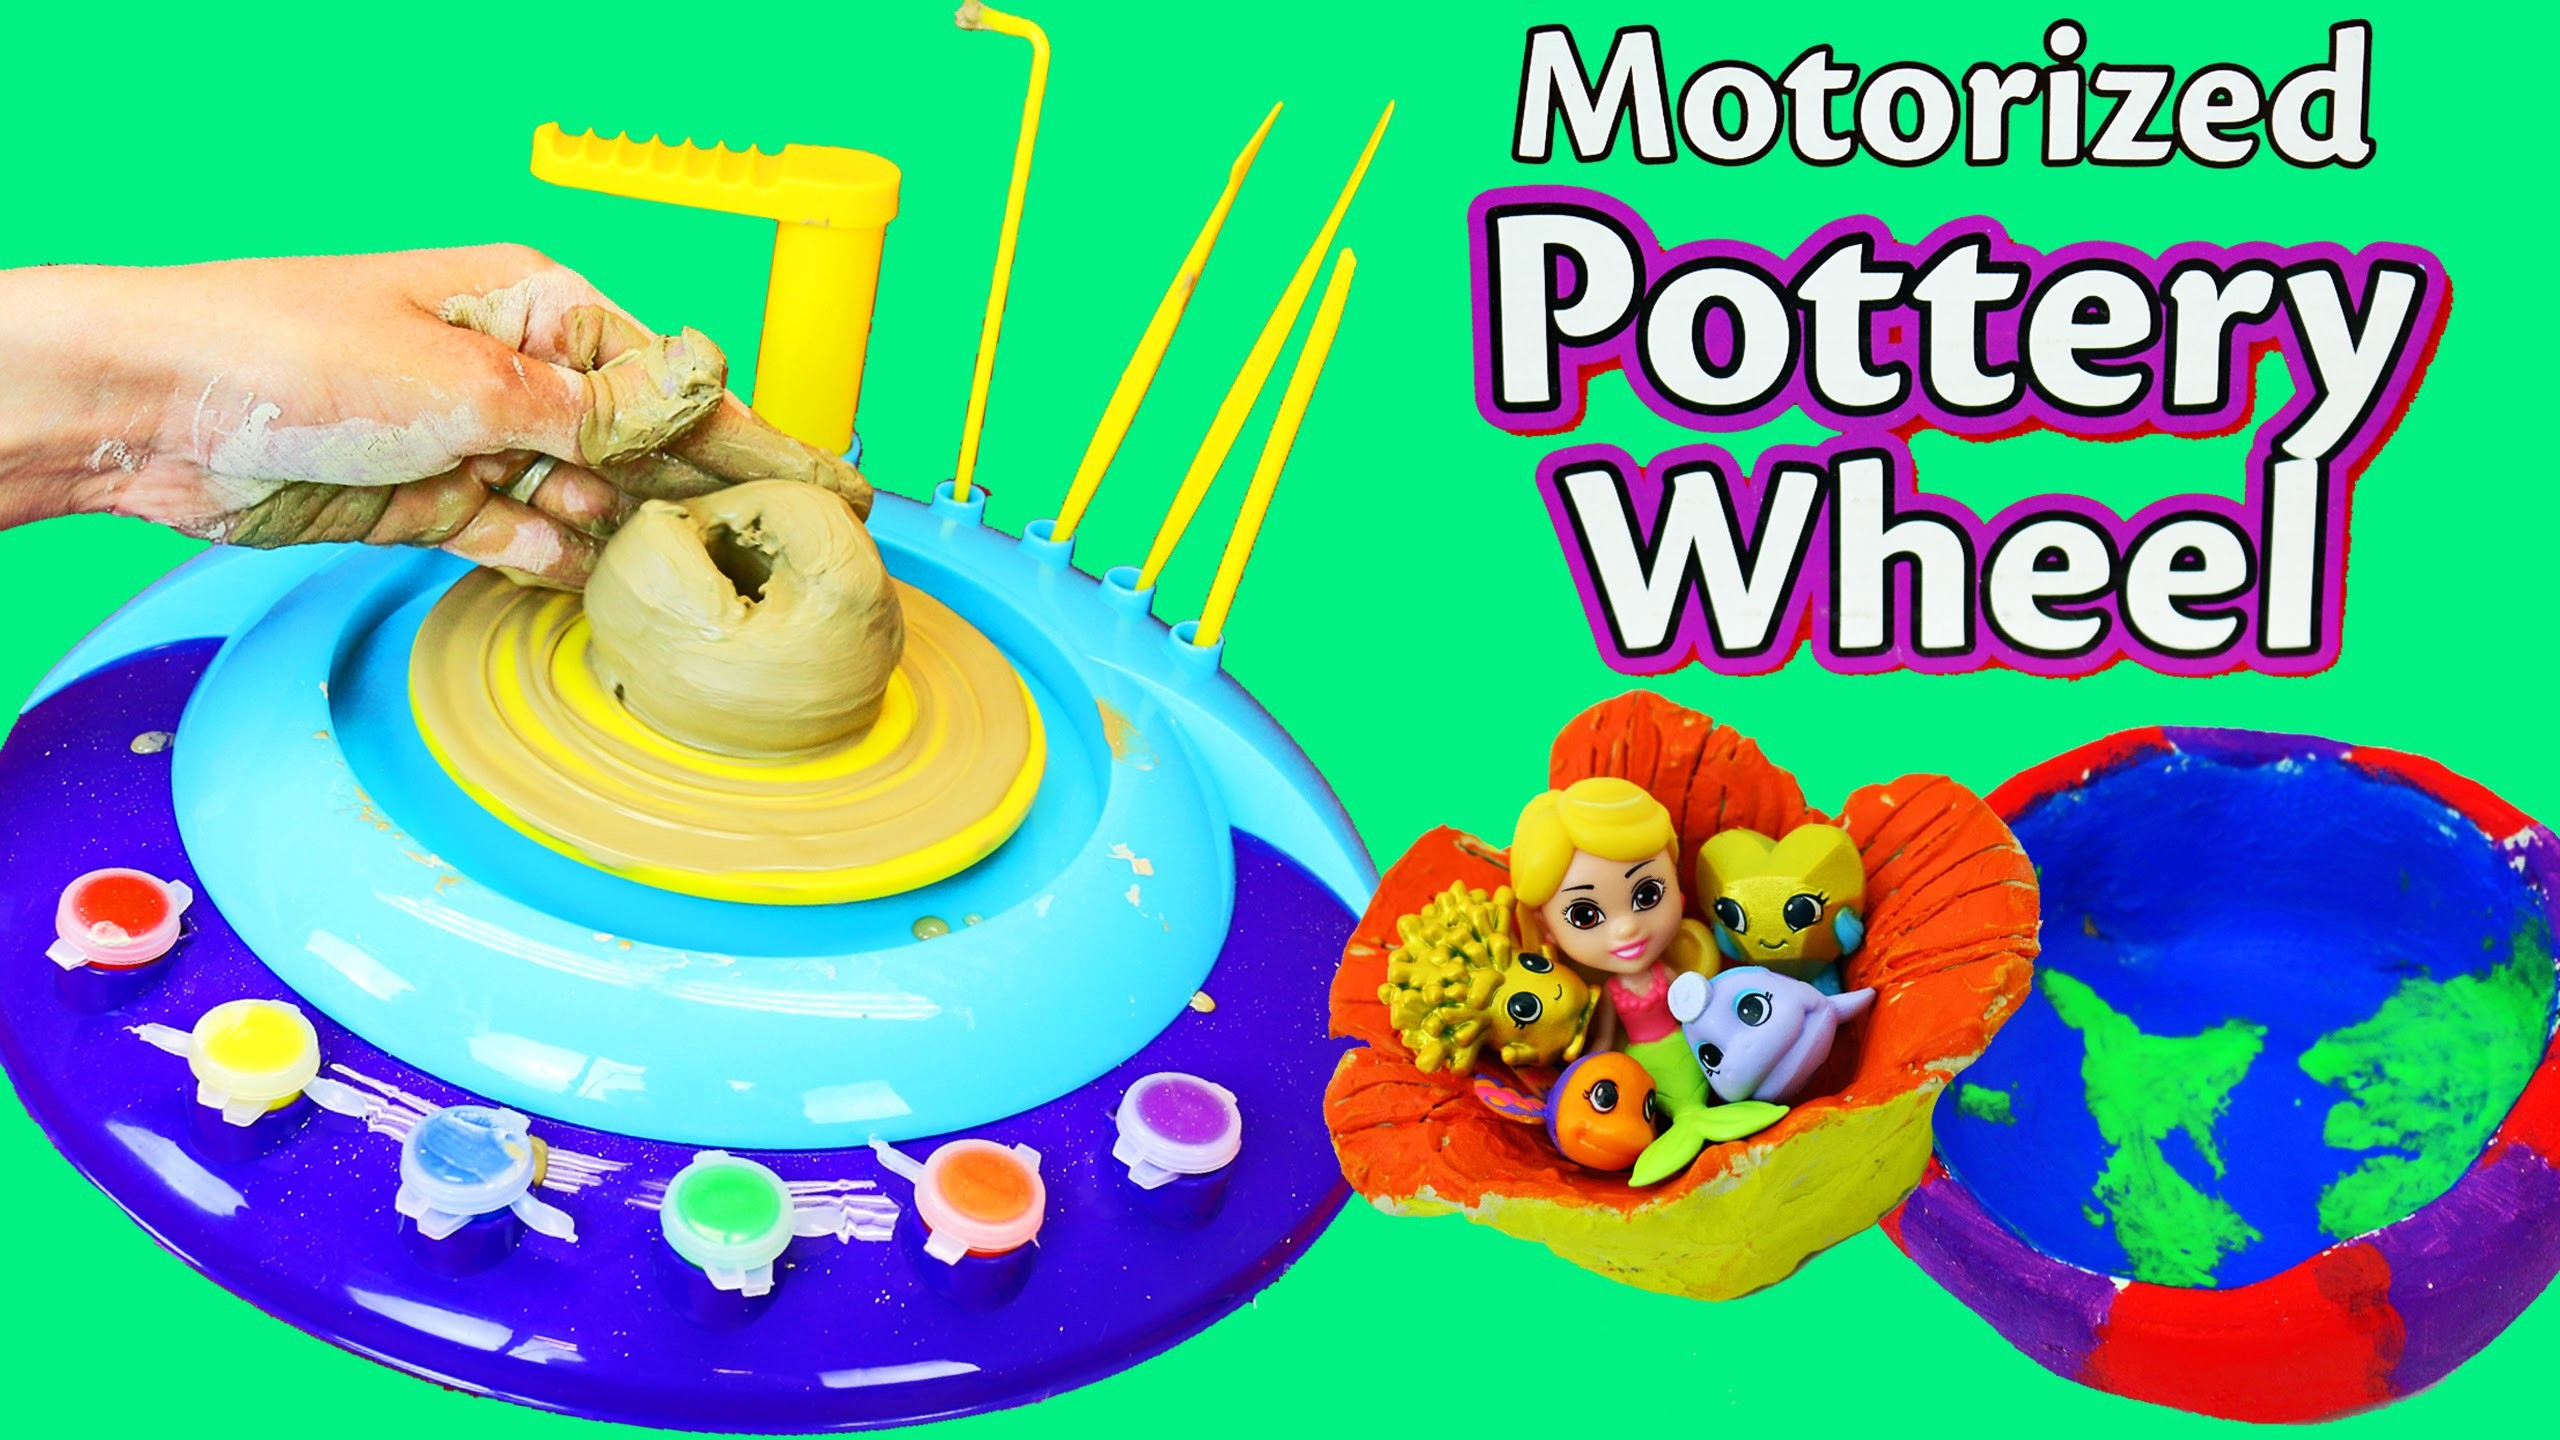 Cra-Z-Art DIY Pottery Wheel Make Your Own Toy Storage Splashlings Kids Art by DisneyCarToys